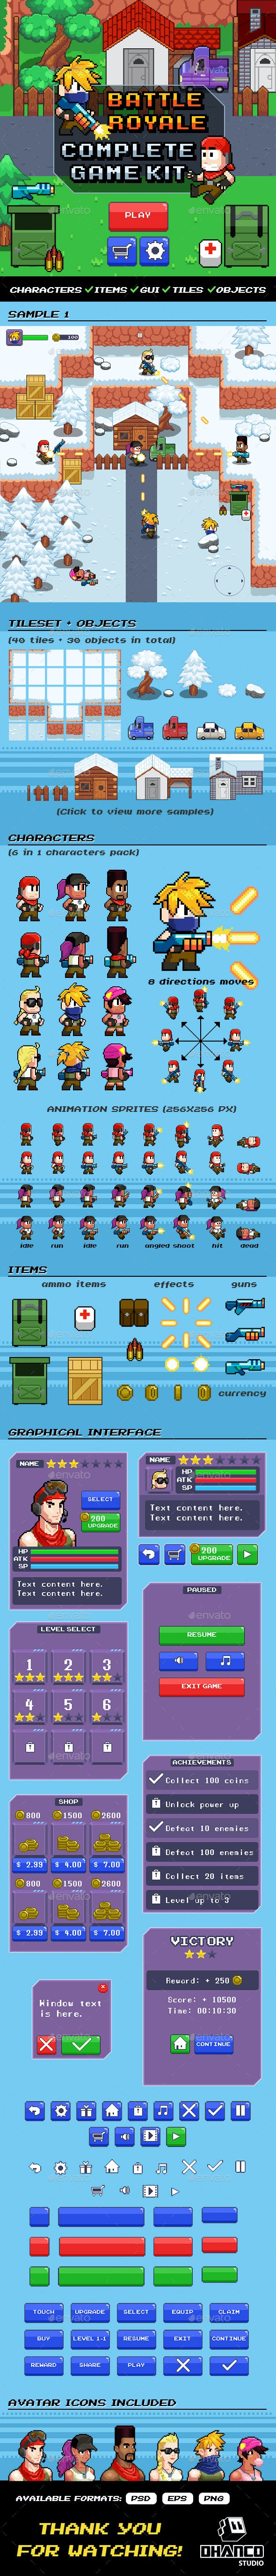 Shooter / Battle Royale - Complete Kit - Game Kits Game Assets